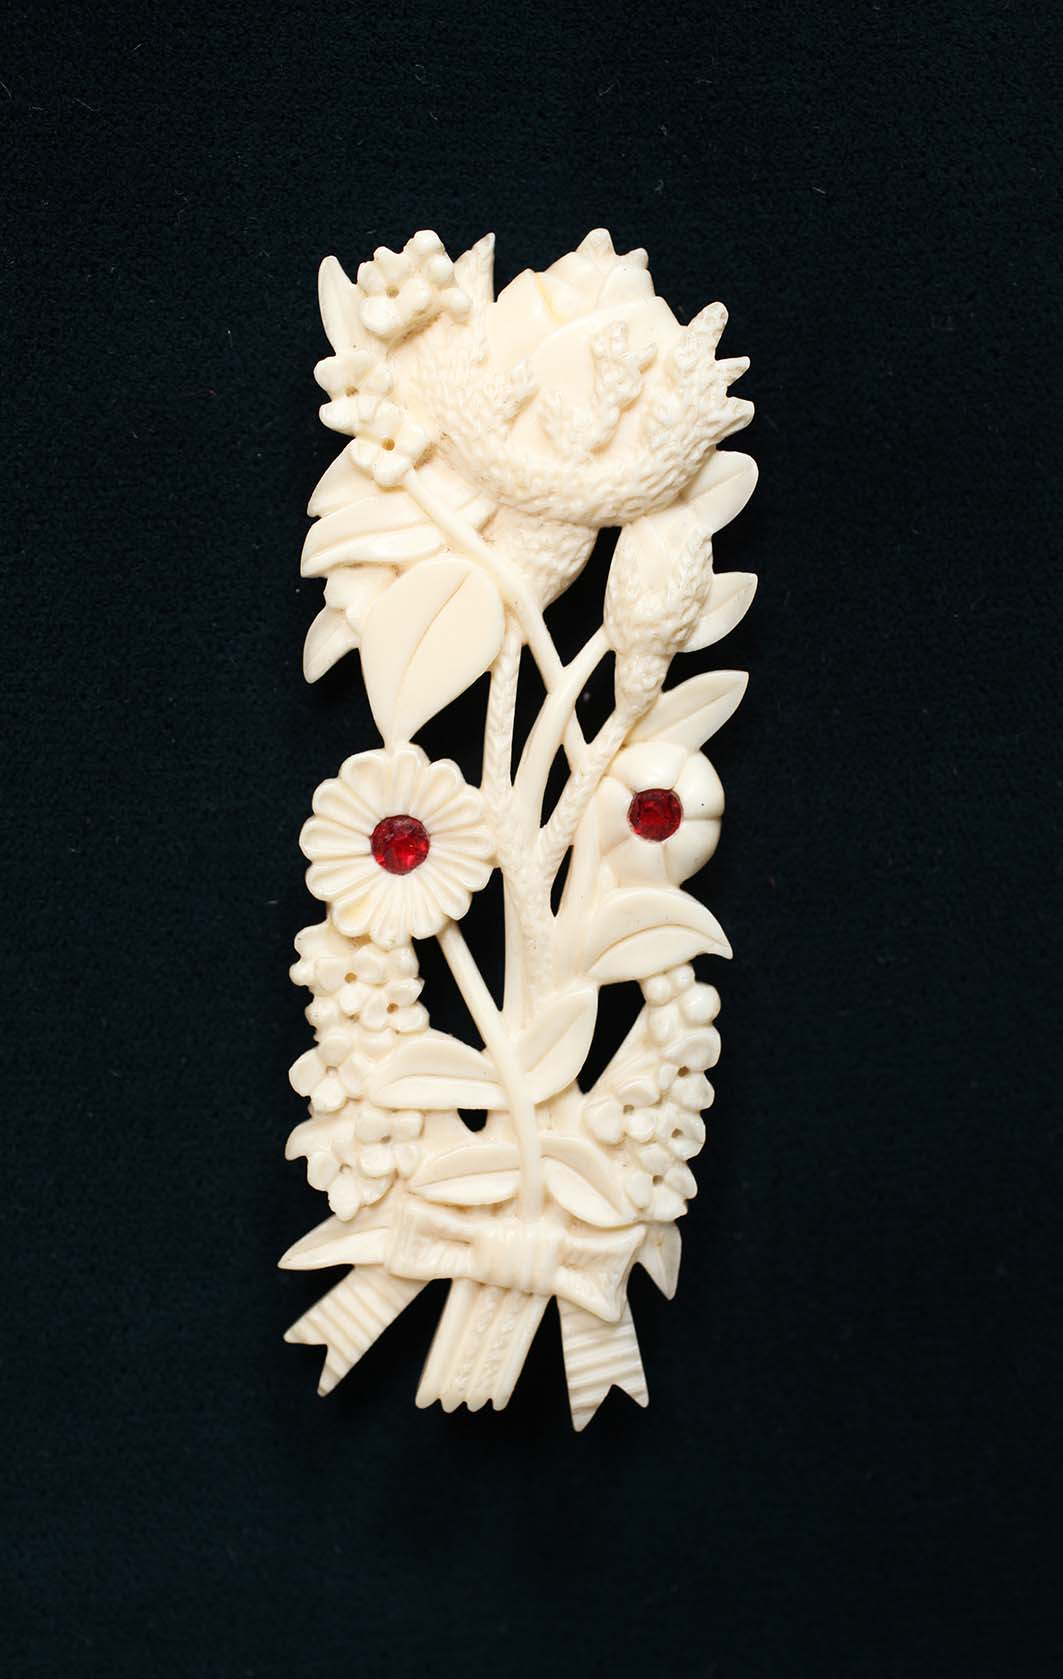 James-Henry-Pullen-Ivory-Brooch-c.1870s-Ivory-and-red-glass-Œjewel¹-Langdon-Down-Museum-of-Learning-Disability.jpg